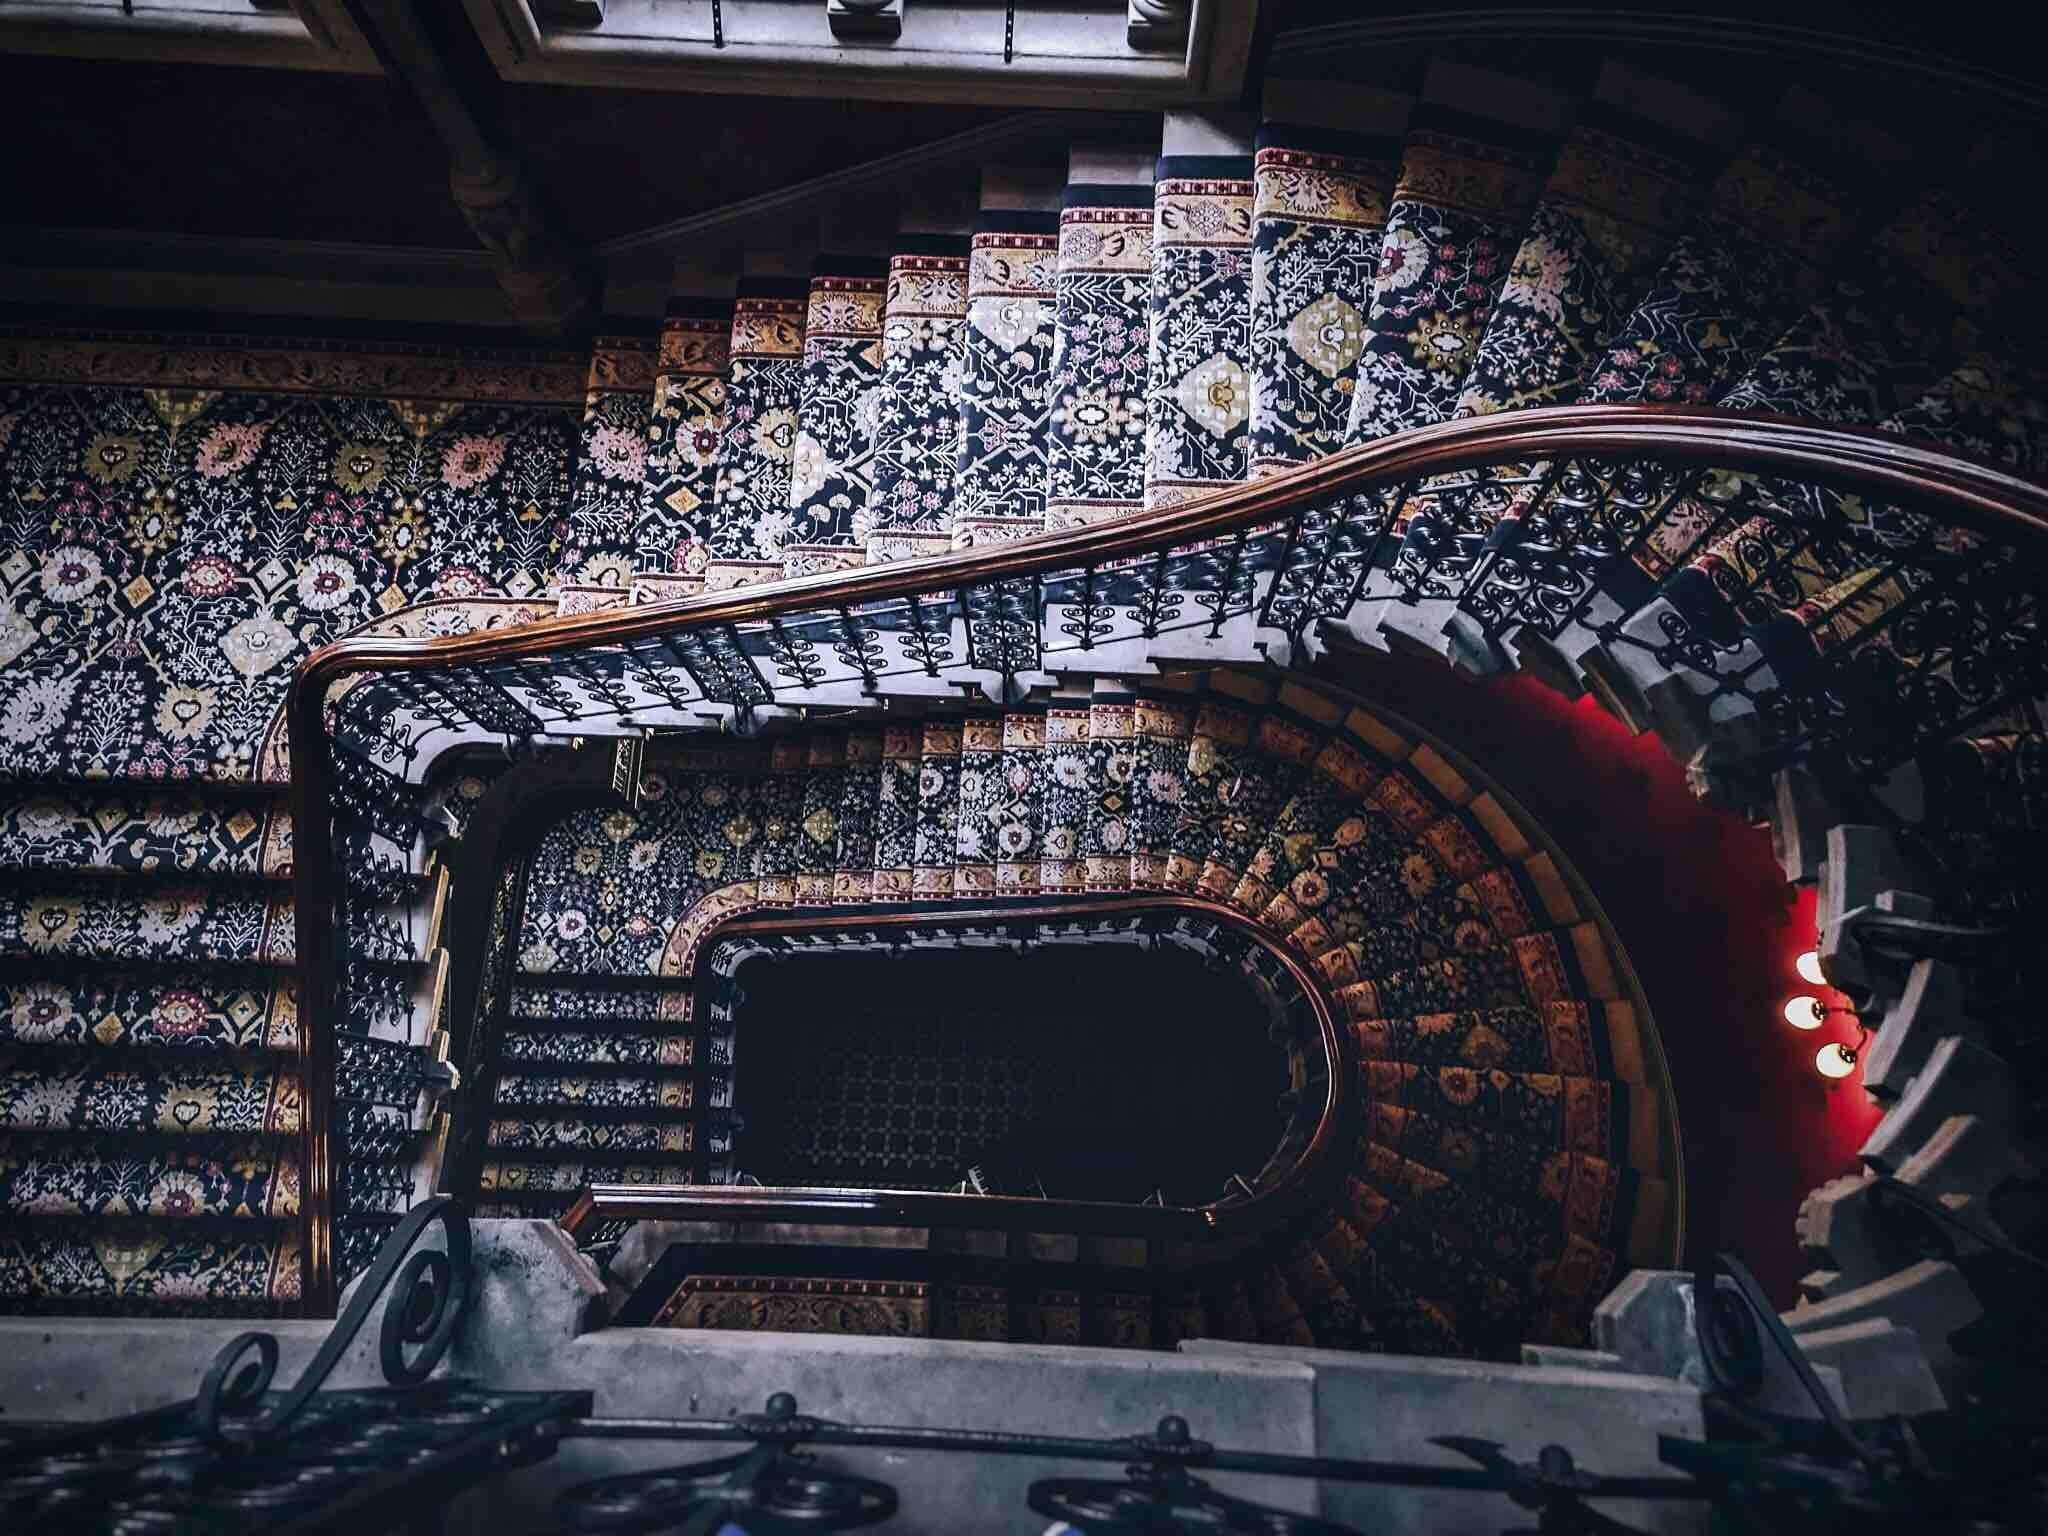 A spiral staircase with ornate carpet and banister designs